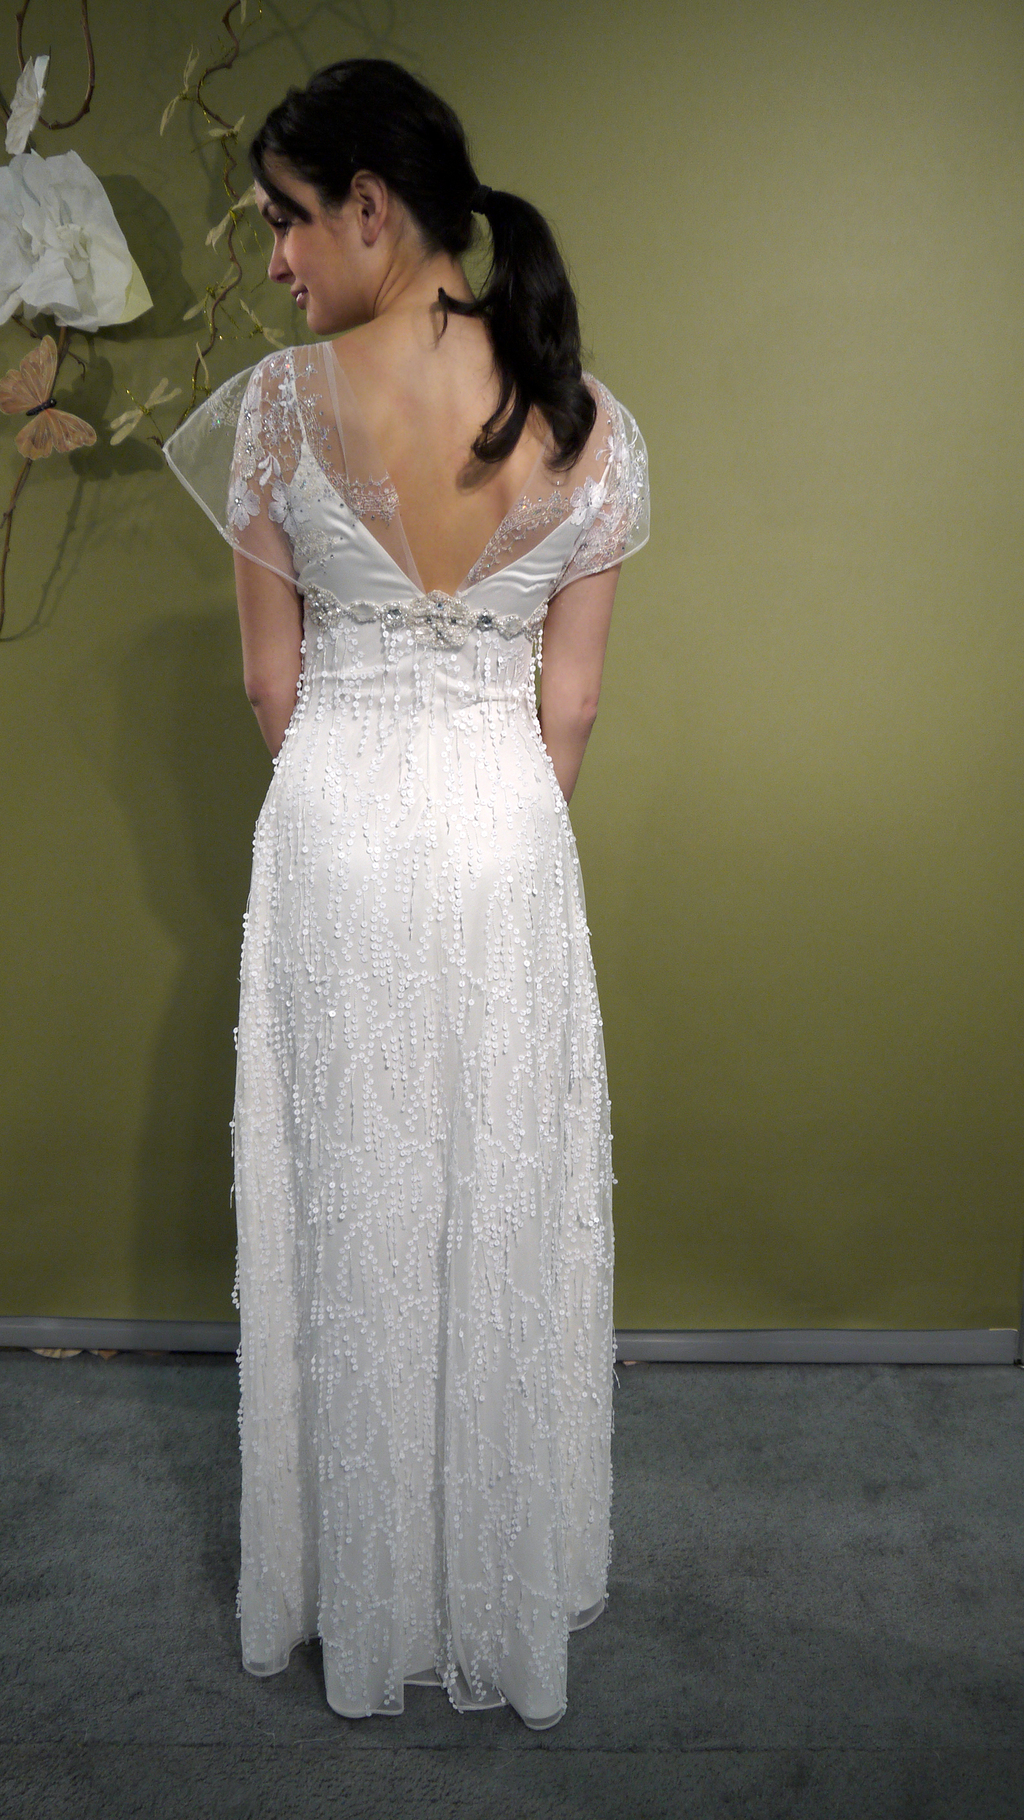 Fall-2011-wedding-dress-frances-claire-pettibone-bridal-gown-back-large.full